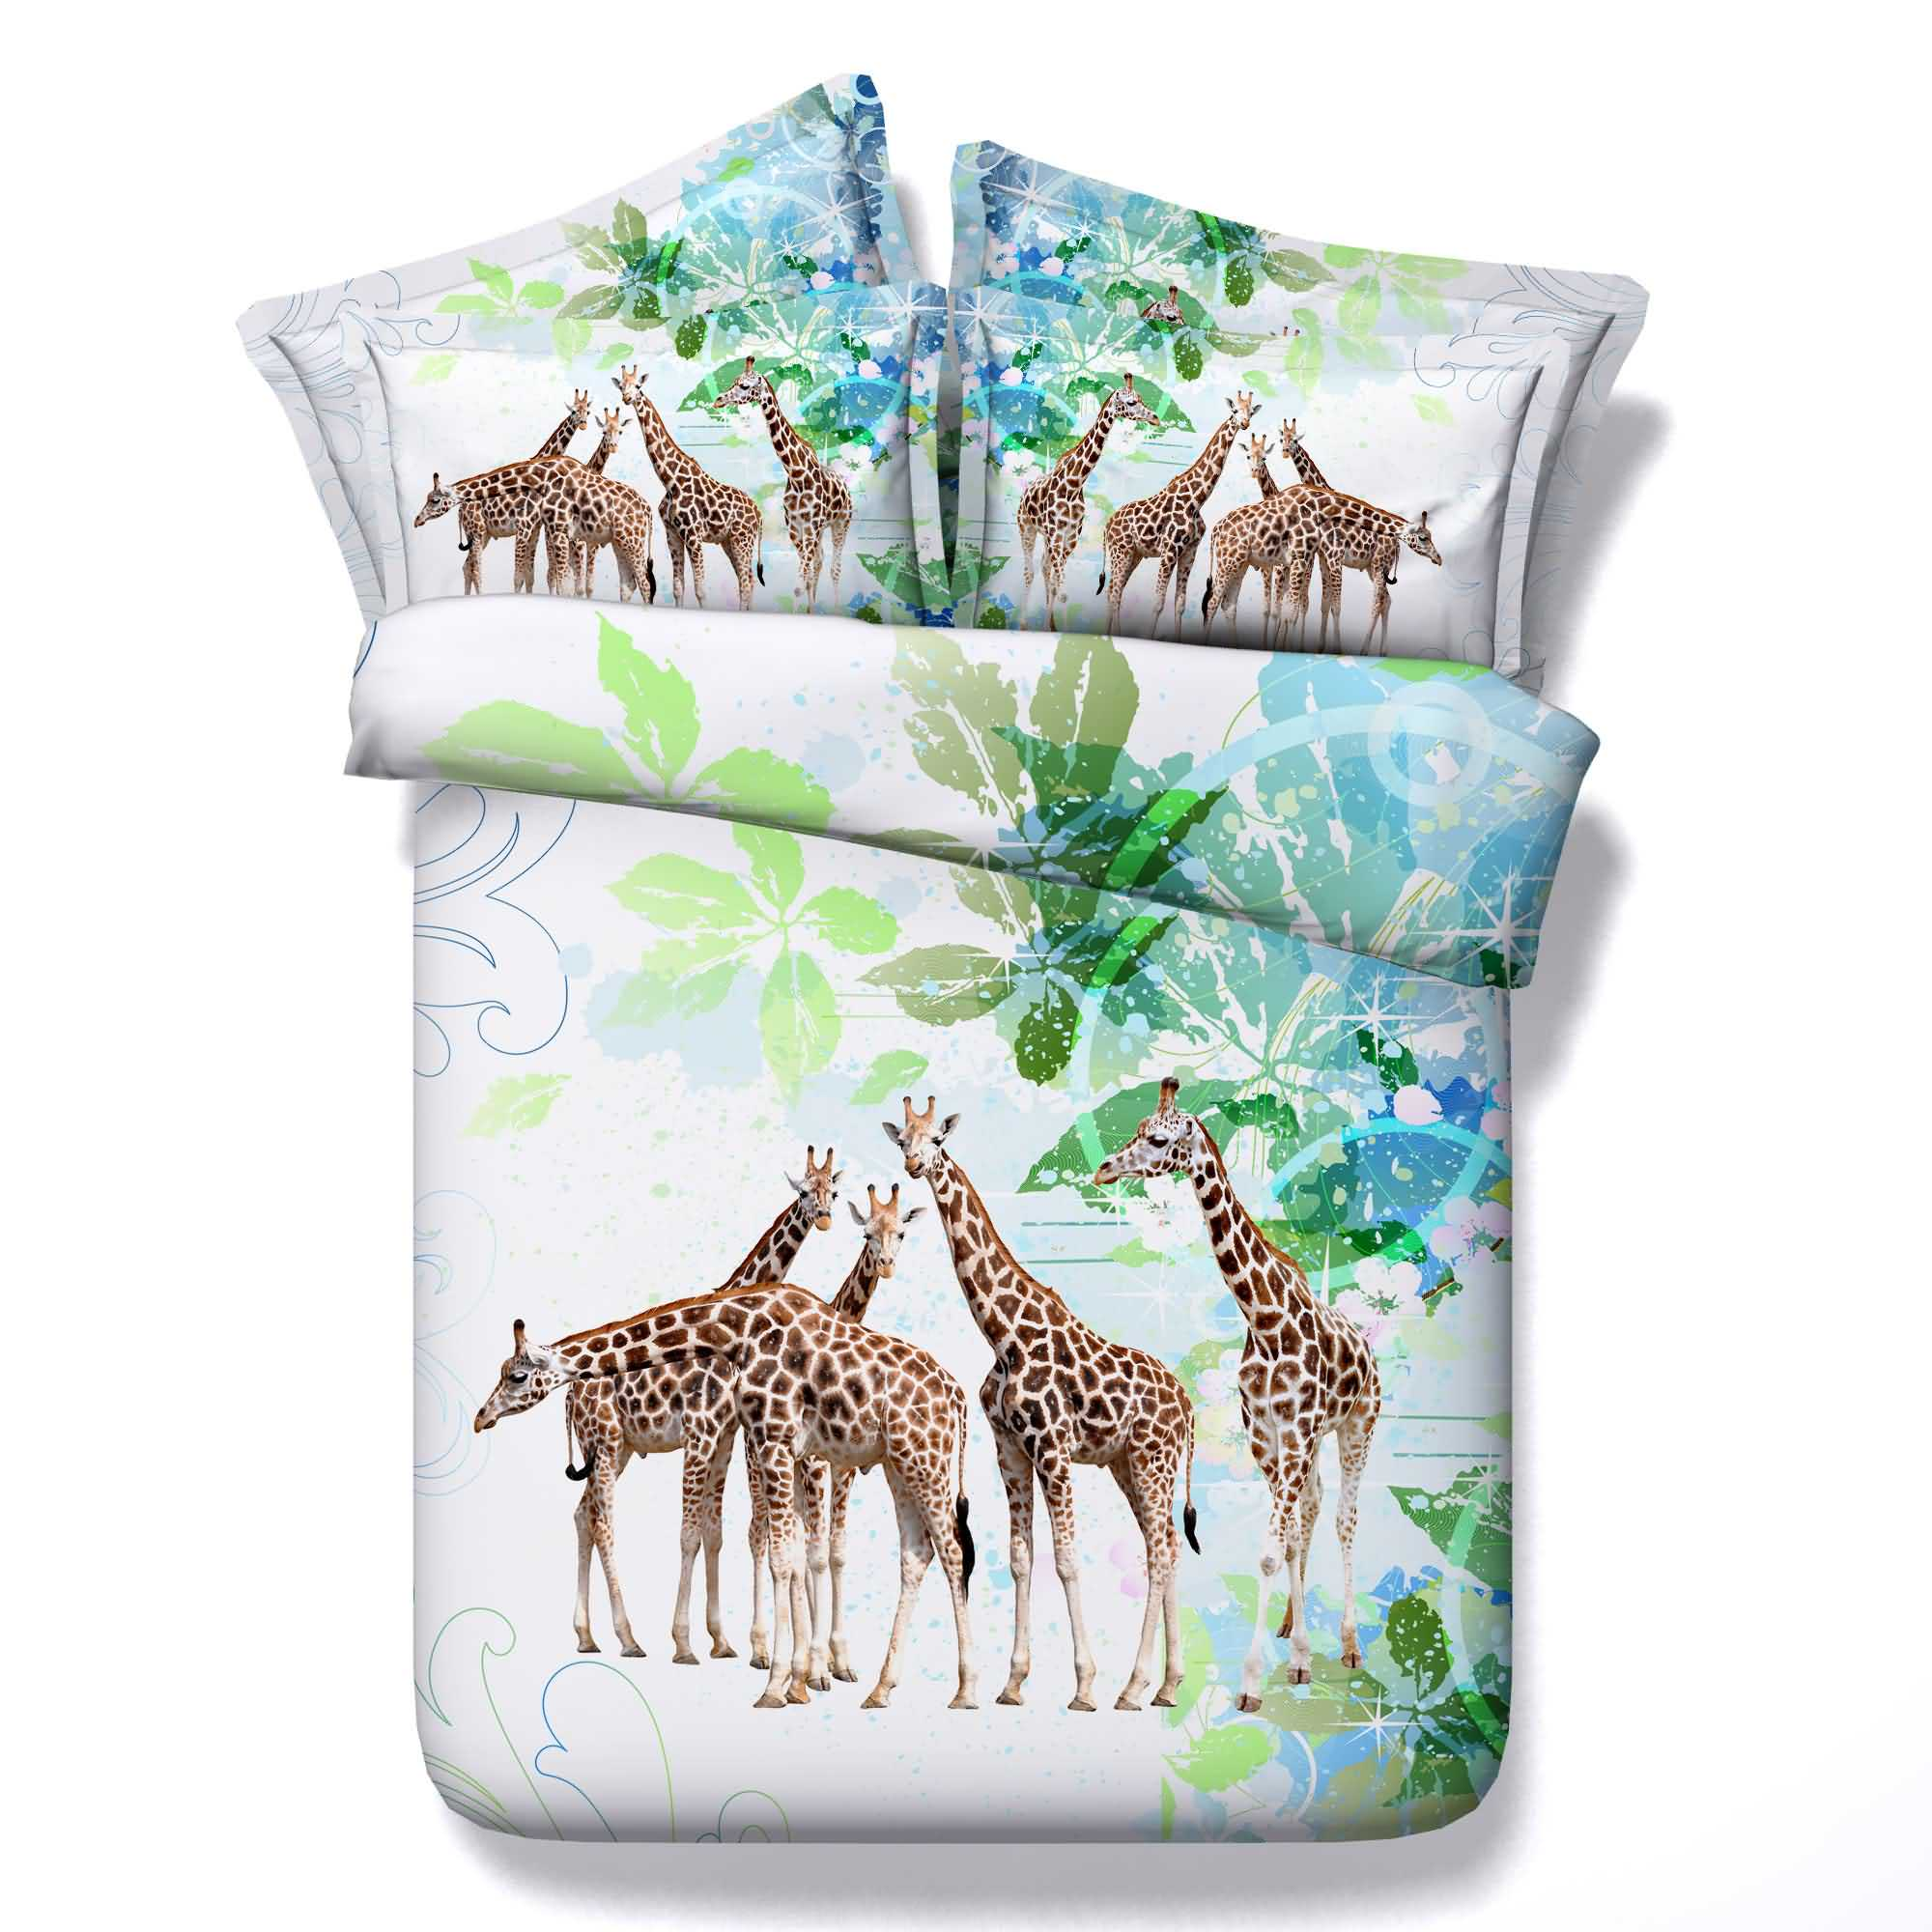 3D Giraffe and Green Leaves Printed Cotton 4-Piece Bedding Sets/Duvet Covers